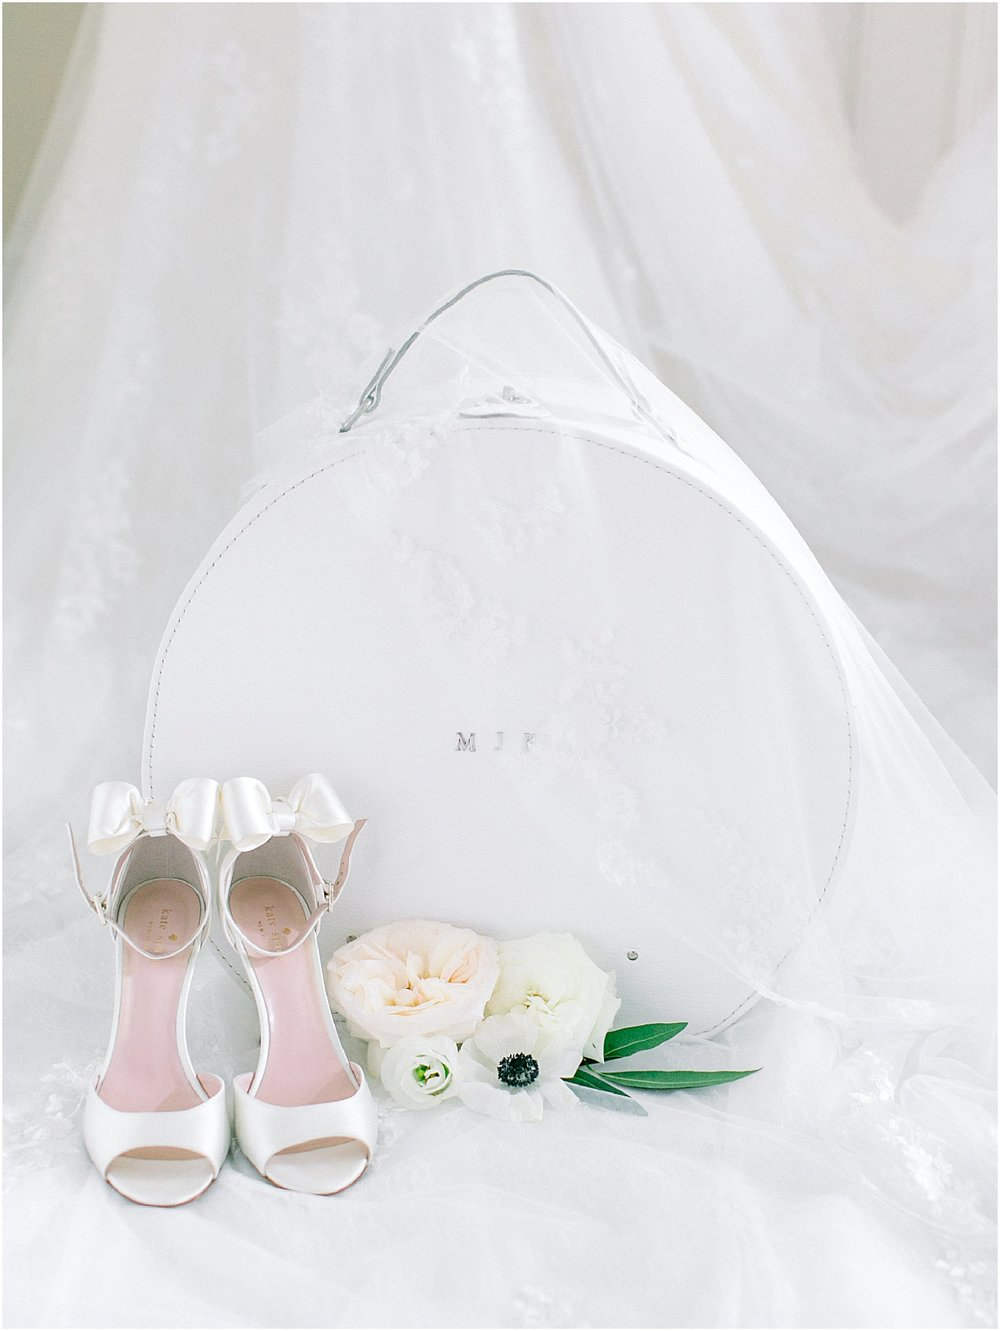 our_wedding_day_troy_NY_emma_willard_fairy_tale_royal_neutral_beauty_and_the_beast_moped_private_estate_cape_cod_boston_wedding_photographer_meredith_jane_photography_chris_kerr_photo_1938.jpg